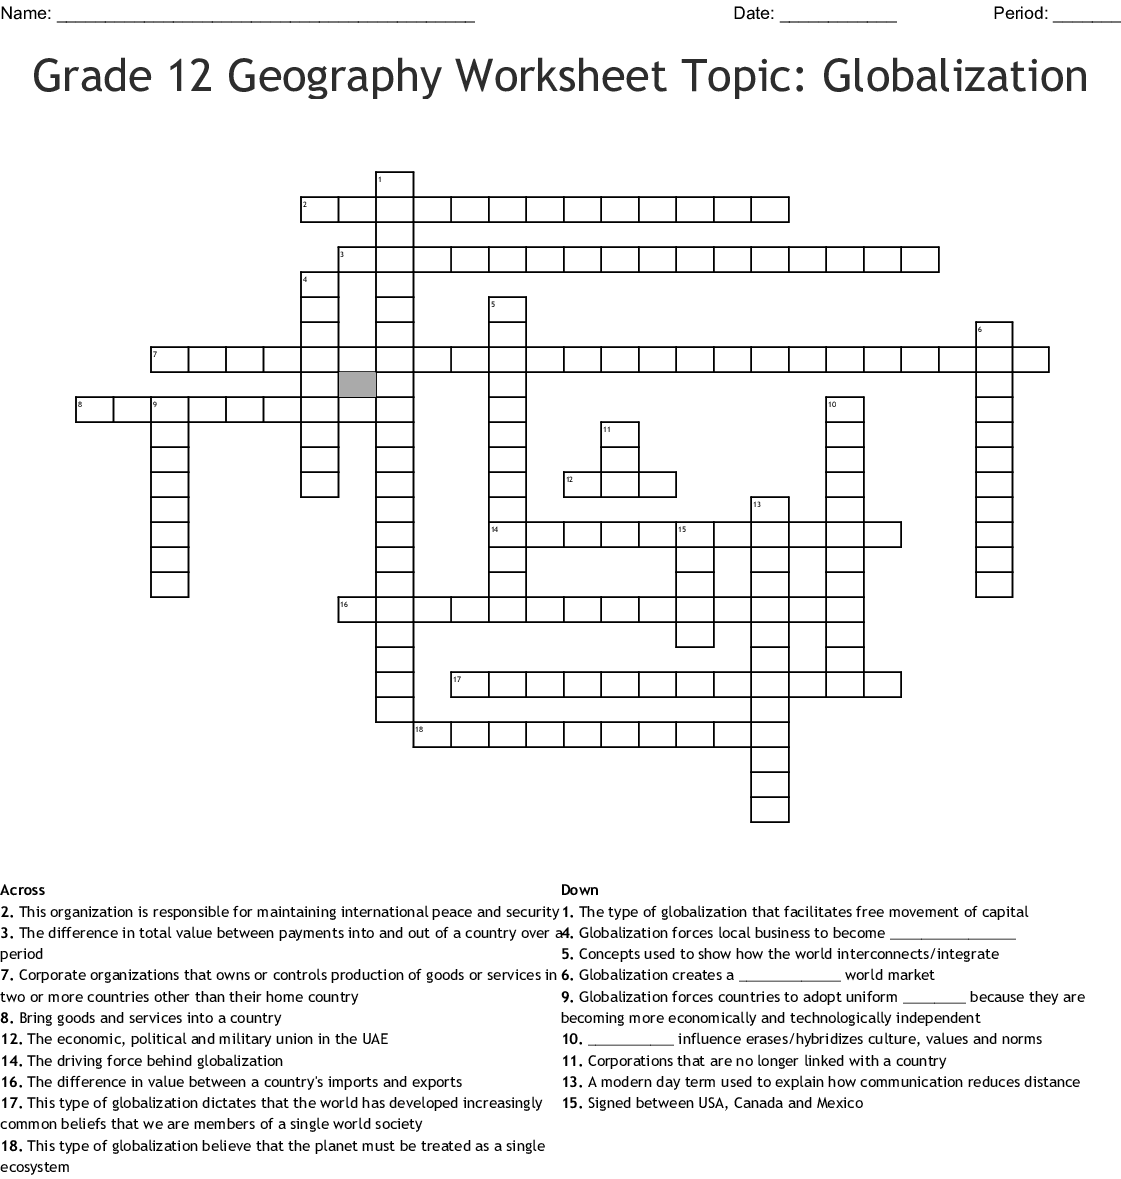 Grade 12 Geography Worksheet Topic Globalization